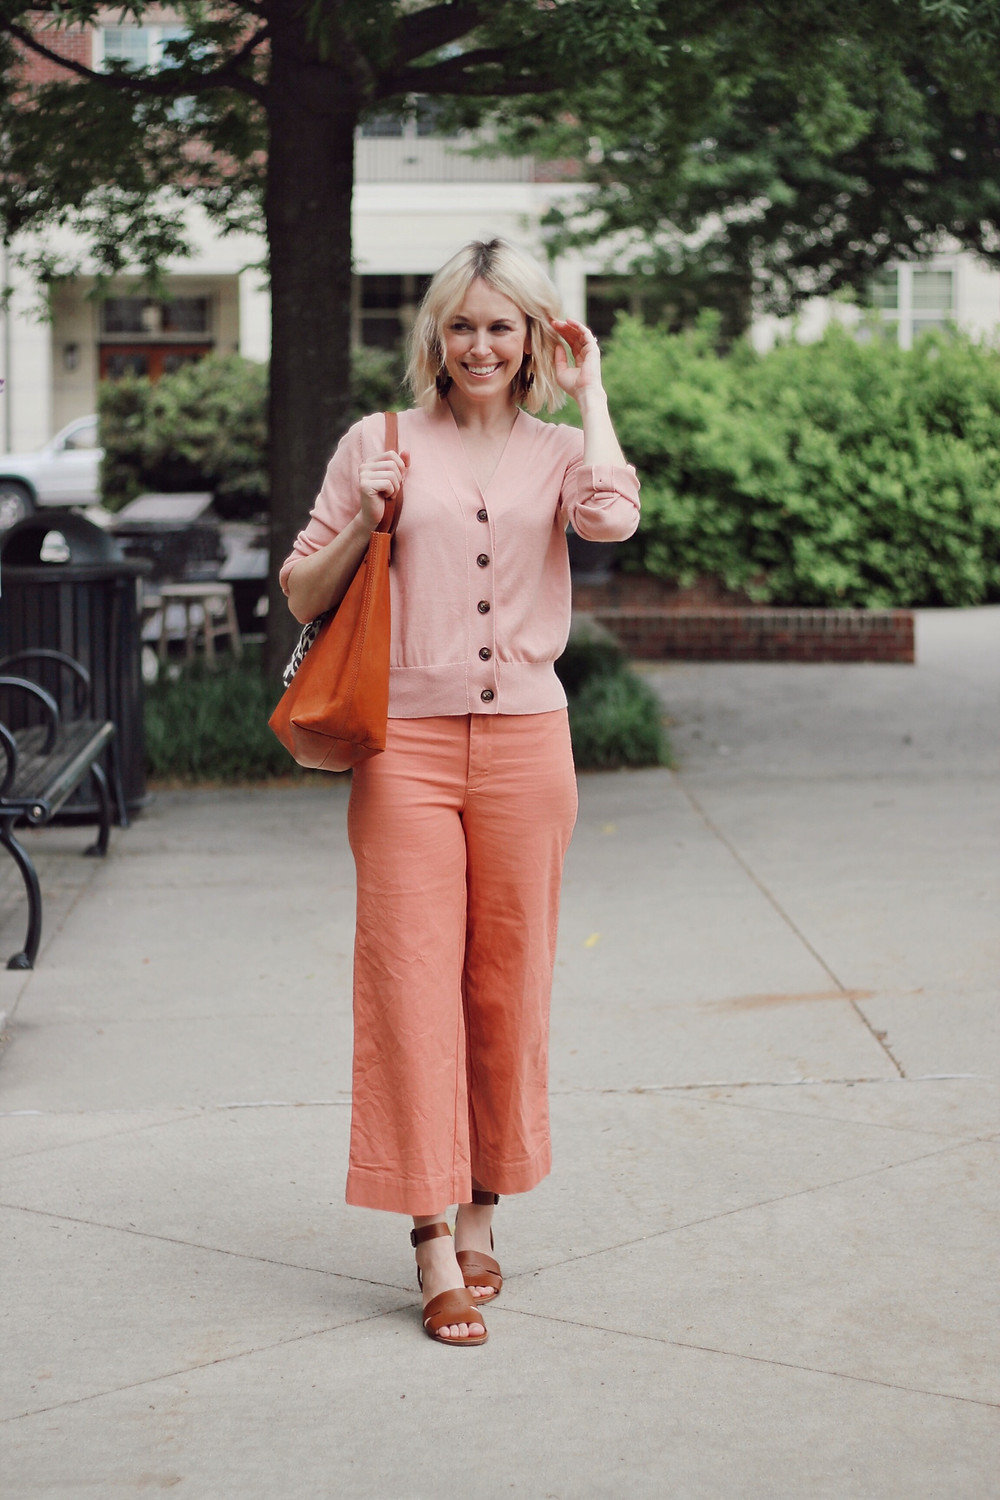 Woman wears spring outfit of pink cardigan, pink cropped pants, and tan sandals.